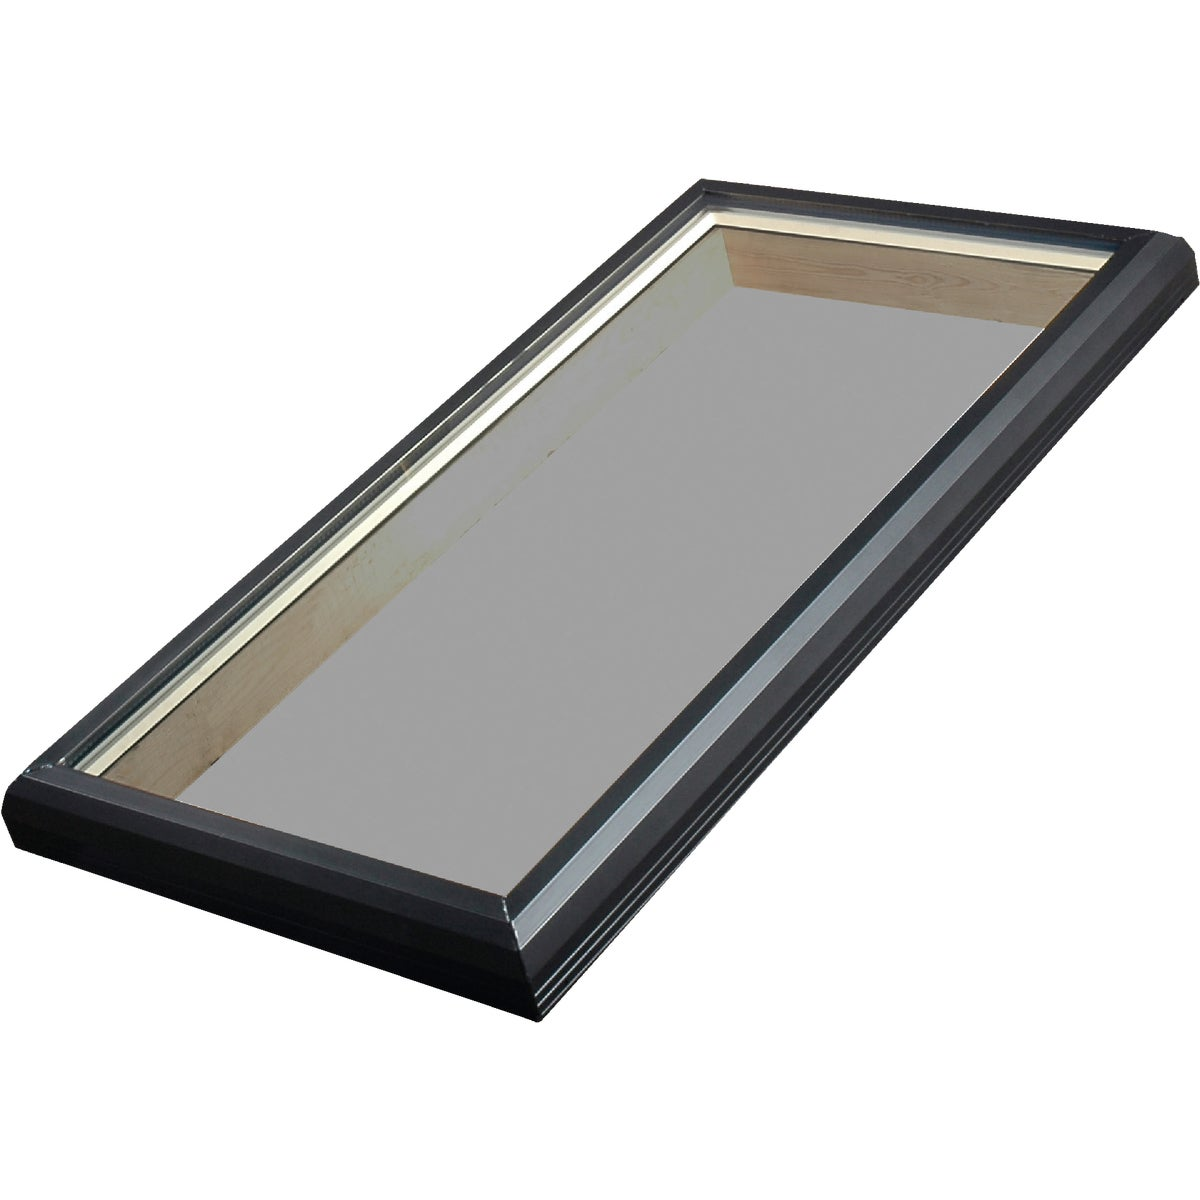 2X4 LOW-E GLASS SKYLIGHT - CMGII 2549 C/H B by Sun Tek Manuf Inc